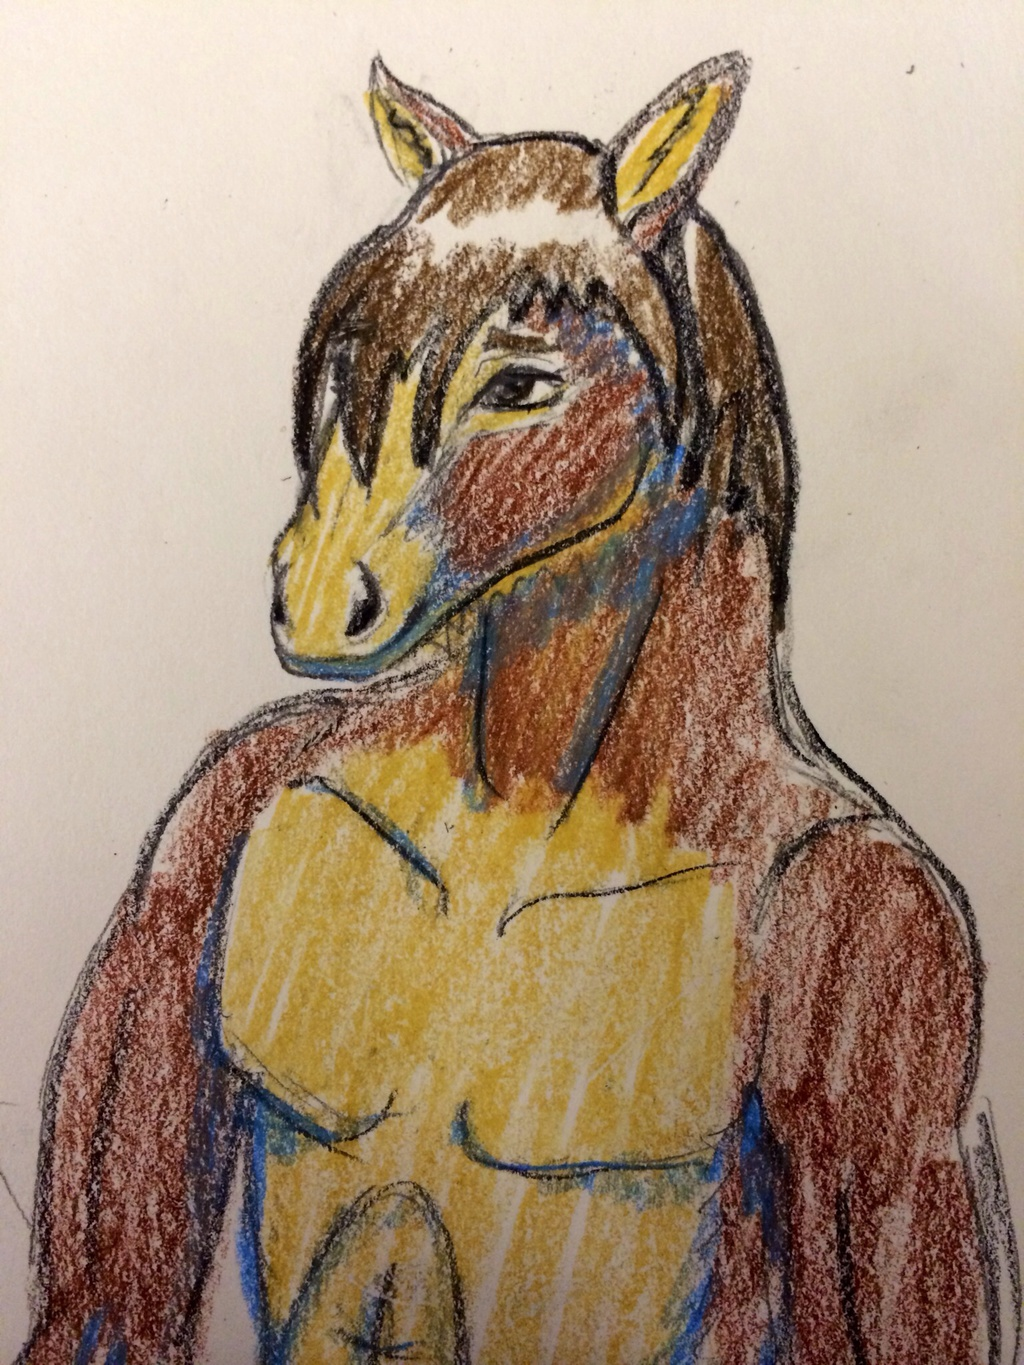 Clydesdale anthro for Rory!